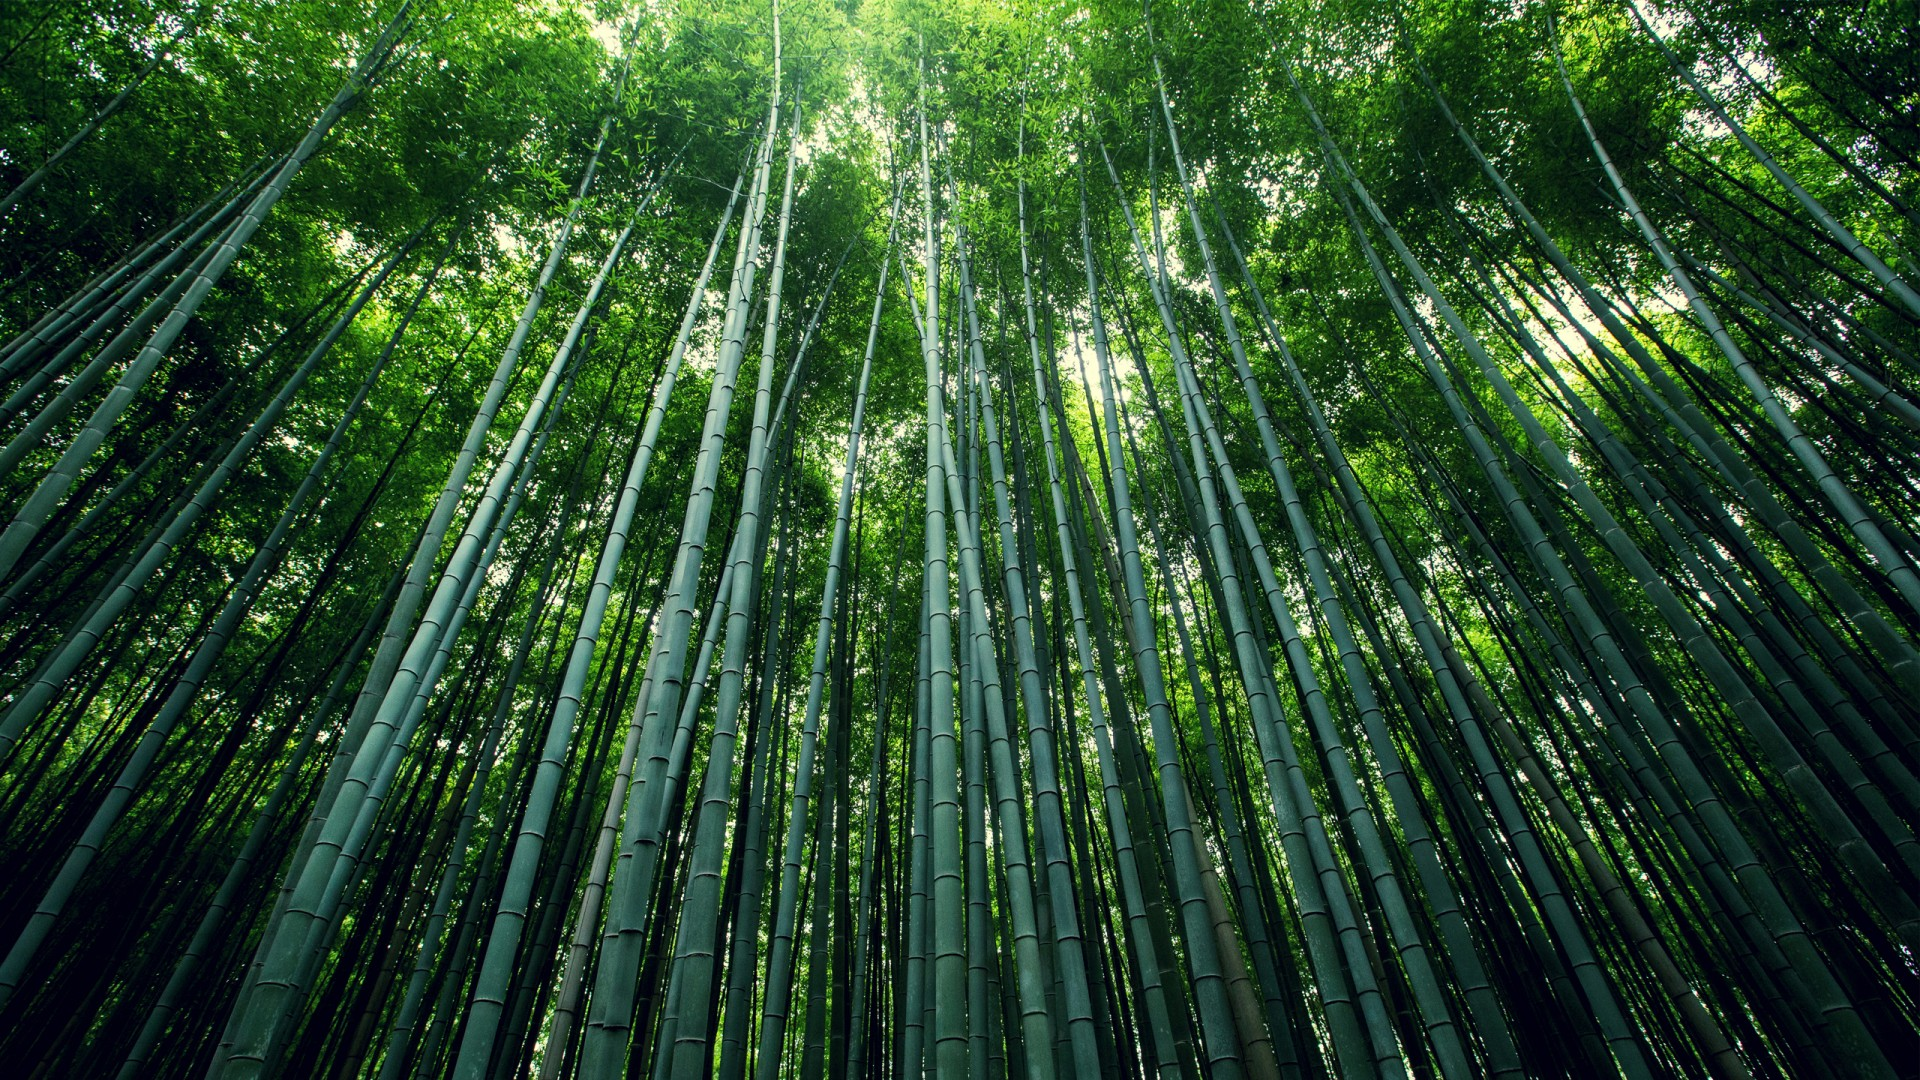 Abstract Hd Wallpapers For Iphone X Bamboo Forest Wallpapers Hd Wallpapers Id 15860